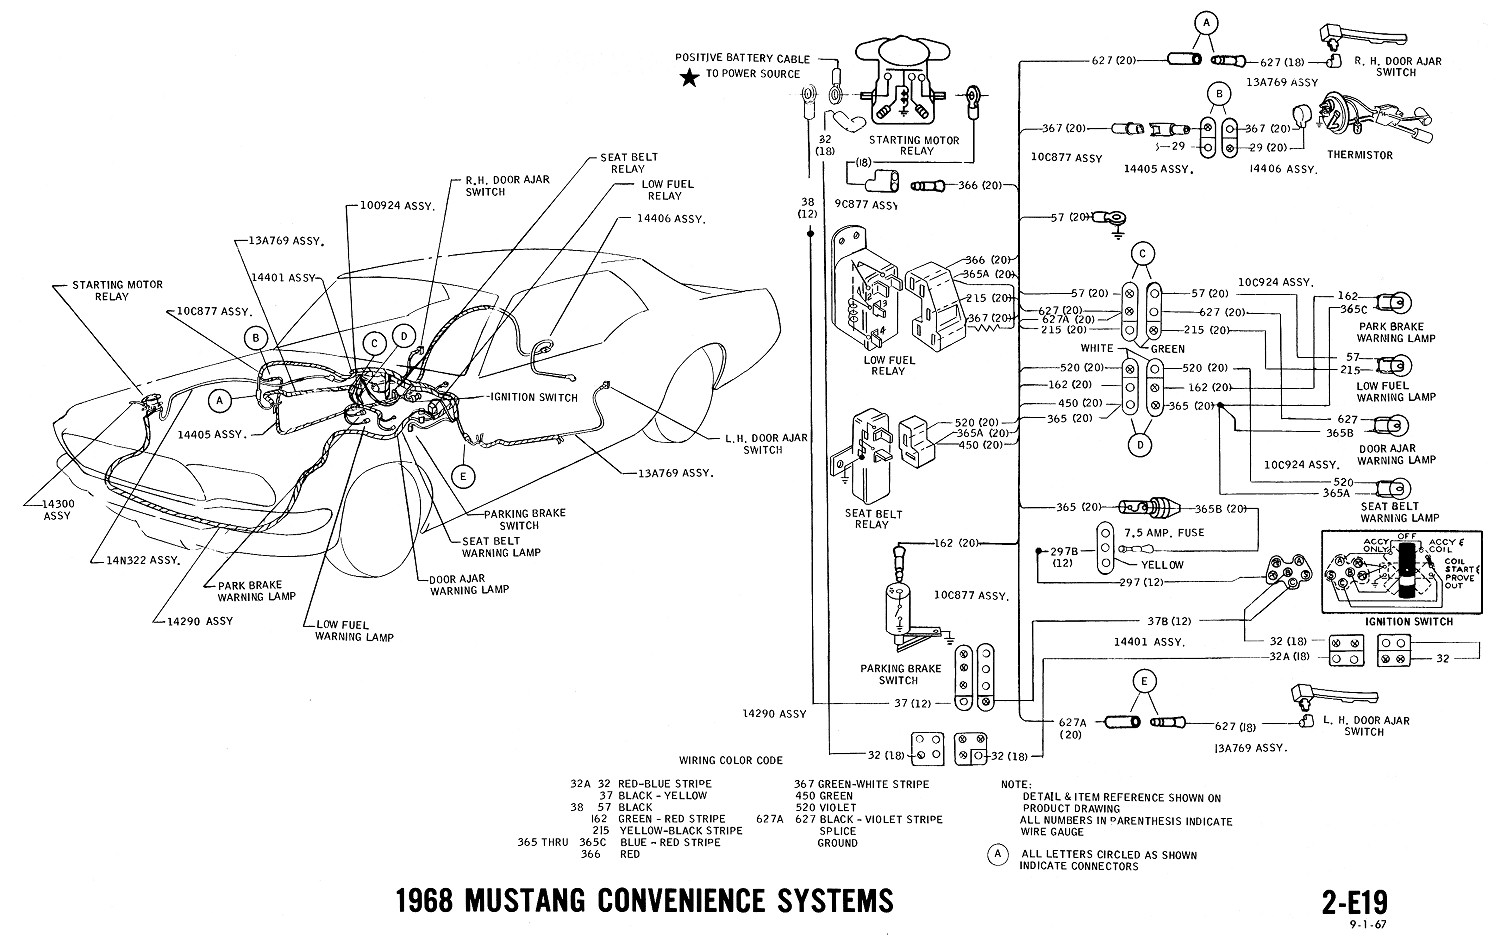 E19 1968 mustang wiring diagrams evolving software 1966 mustang under dash wiring harness at crackthecode.co